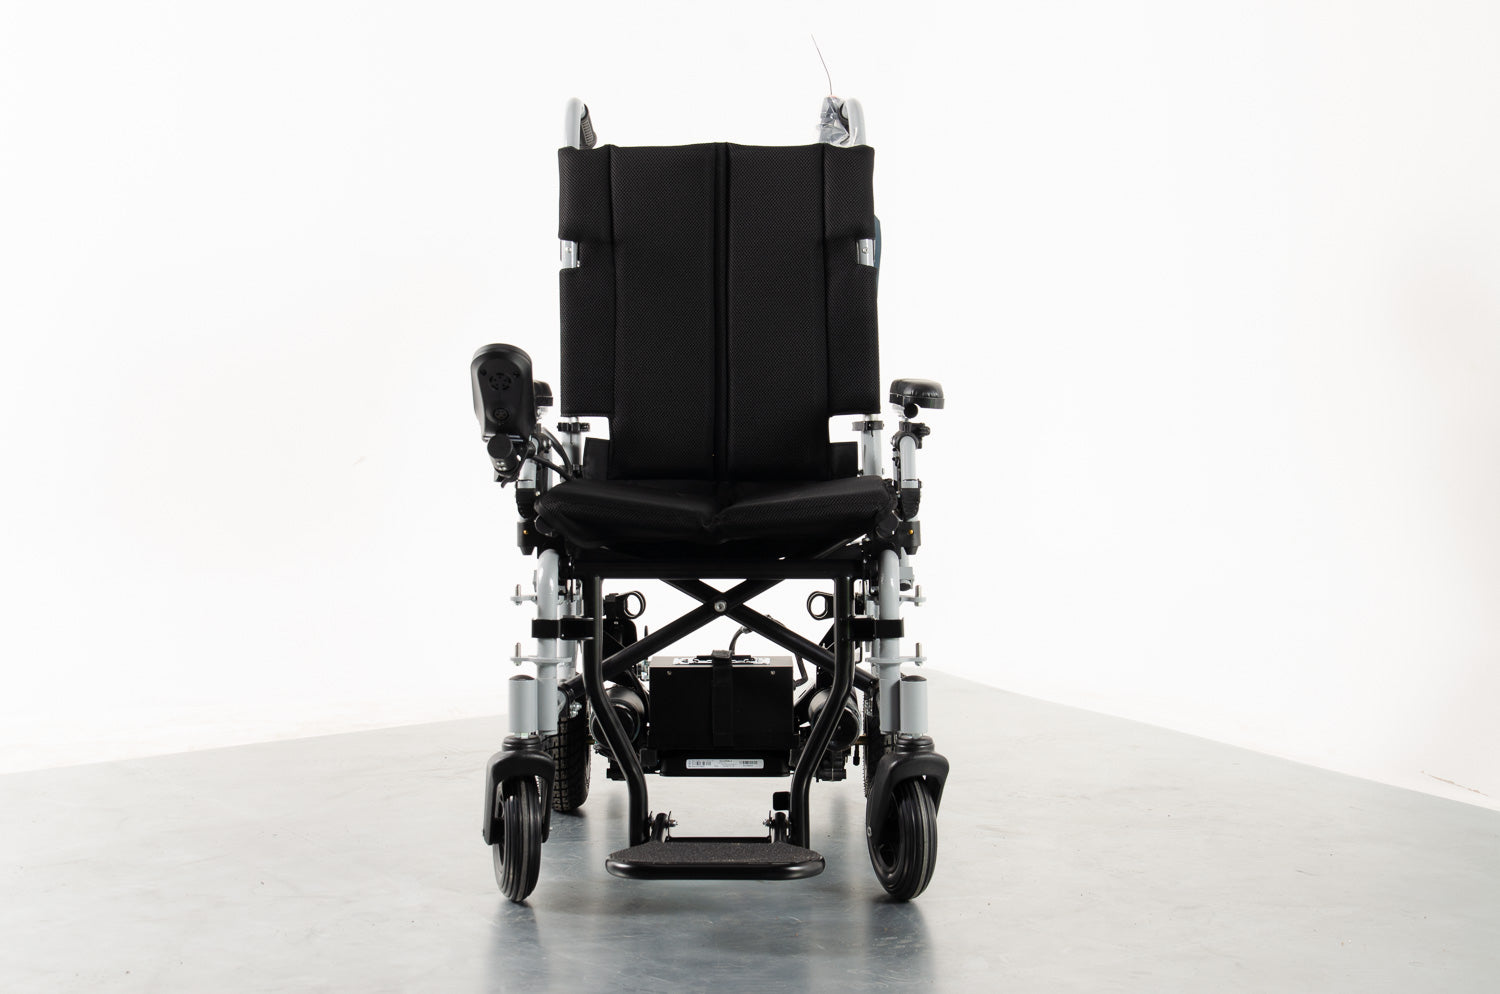 New SupaChair Combi 4mph Transportable Powerchair - Electric Wheelchair Lithium Battery